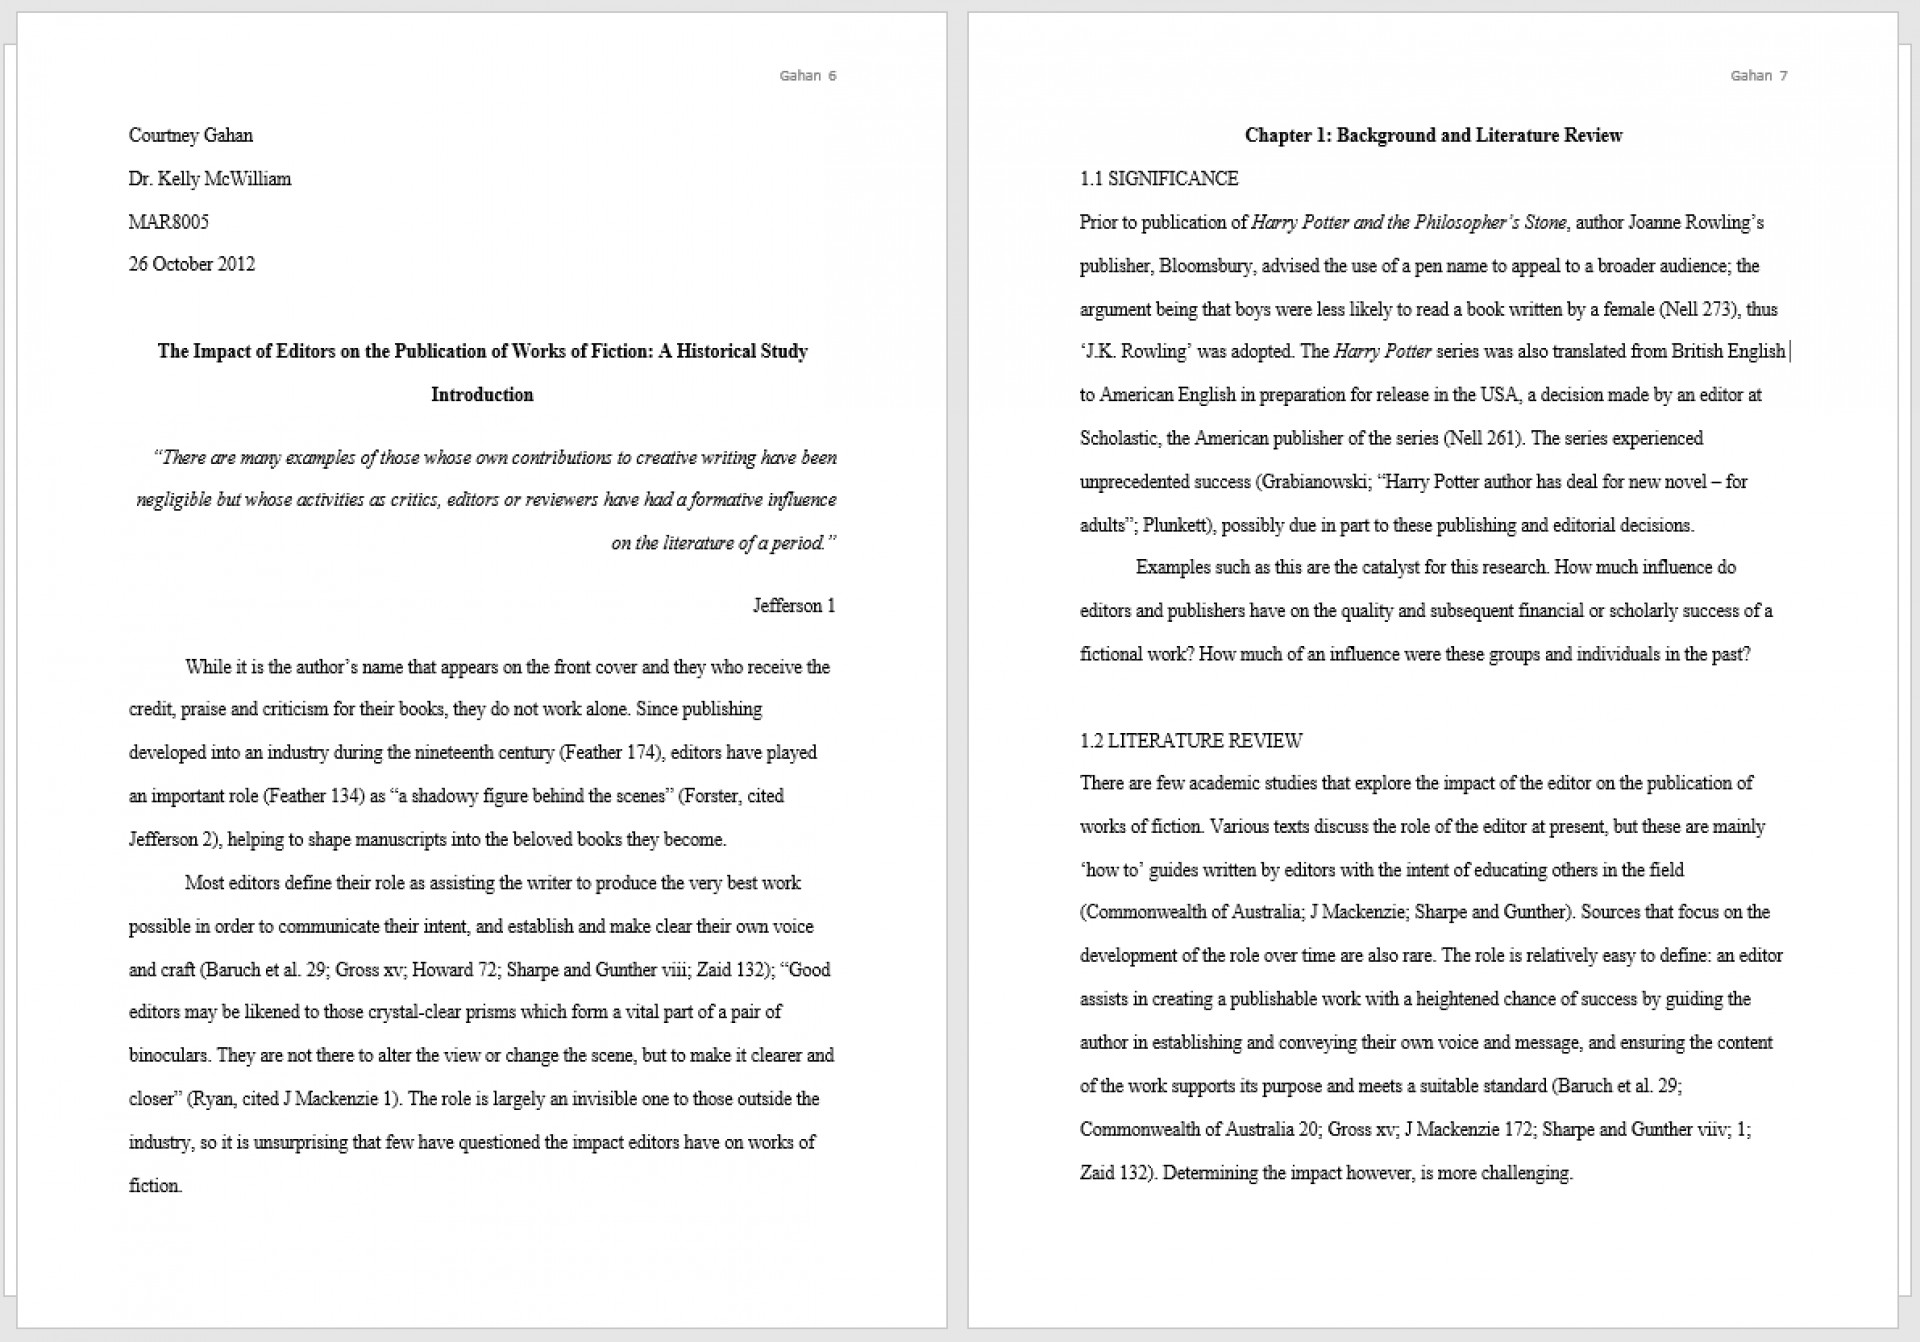 011 Thesis Two Pages Example Full Mla Magnificent Essay Format 2018 Template Cite In Anthology 1920